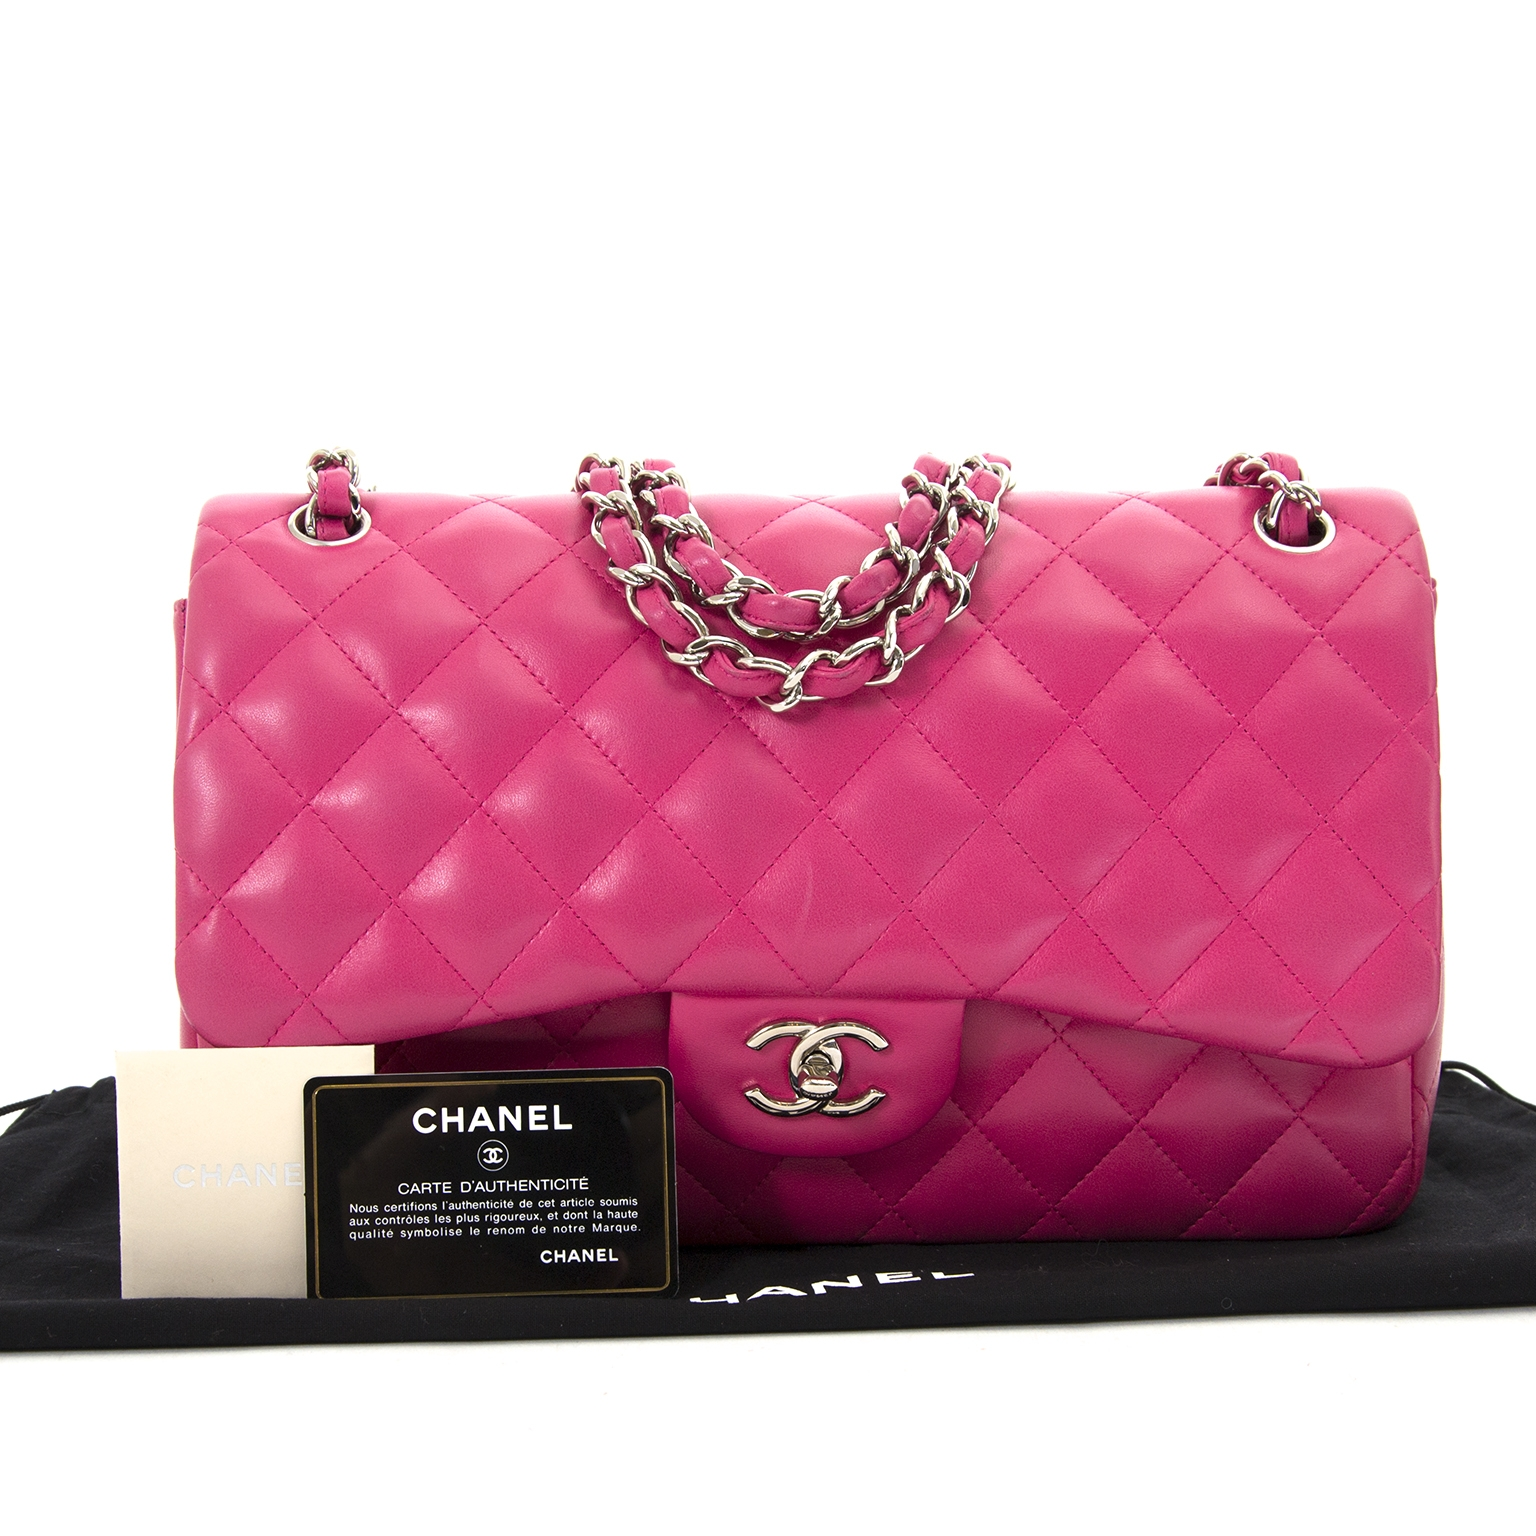 ... sale at Labellov 100% authentic Chanel Bubblegum Pink Jumbo Double  Classic Flap Bag PHW available for the best 7a250f608706d